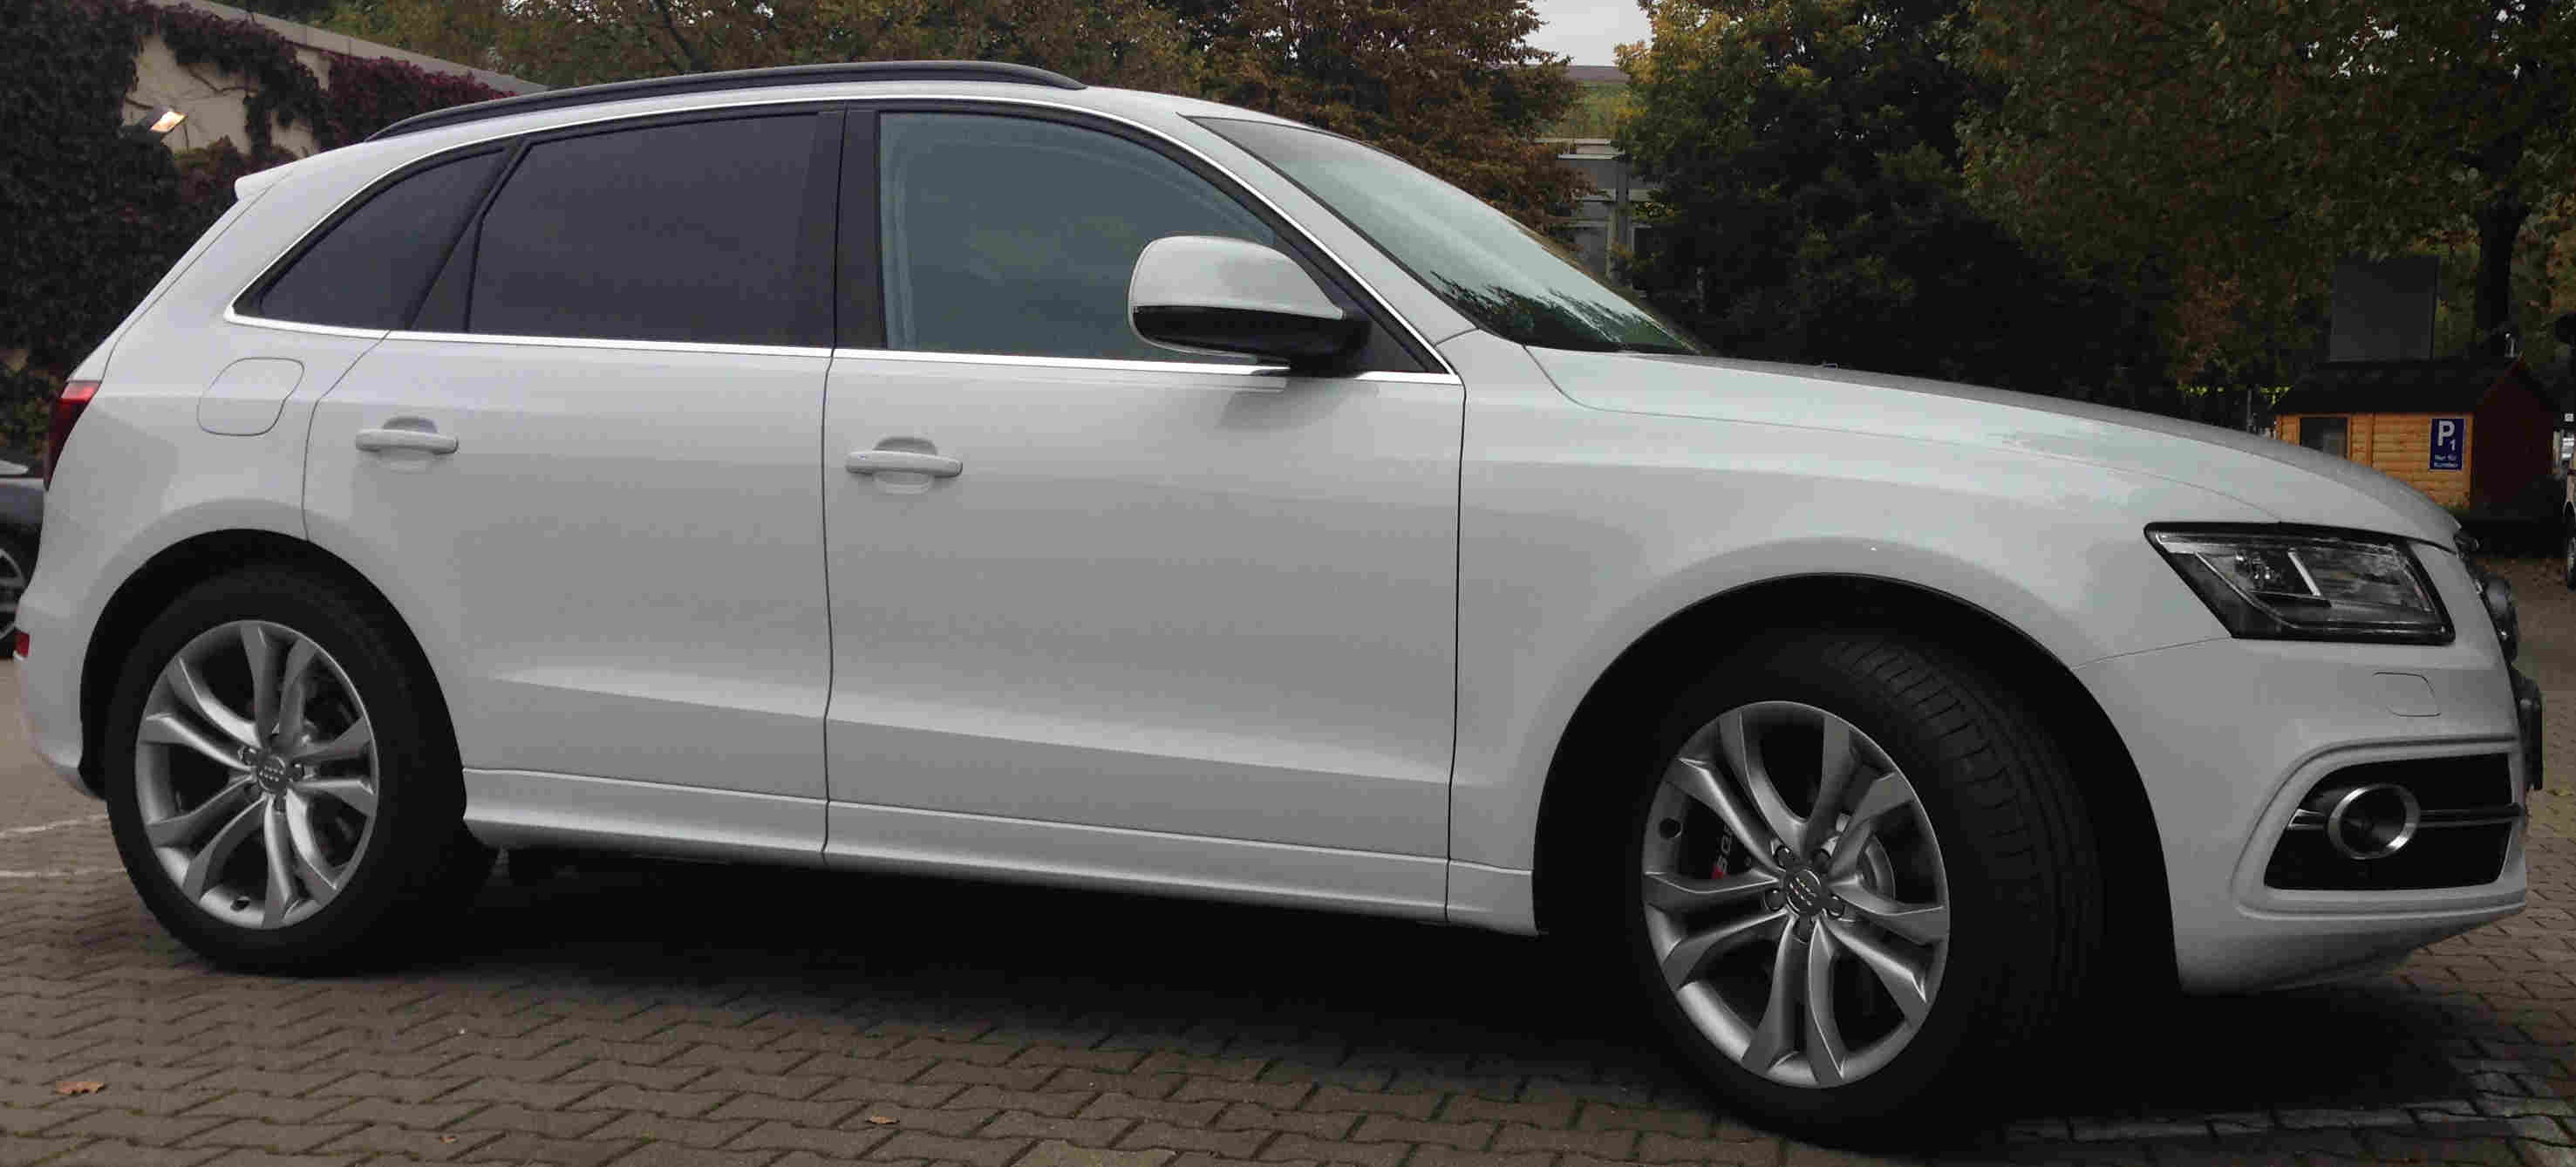 Audi SQ5 mit Extras in weiss